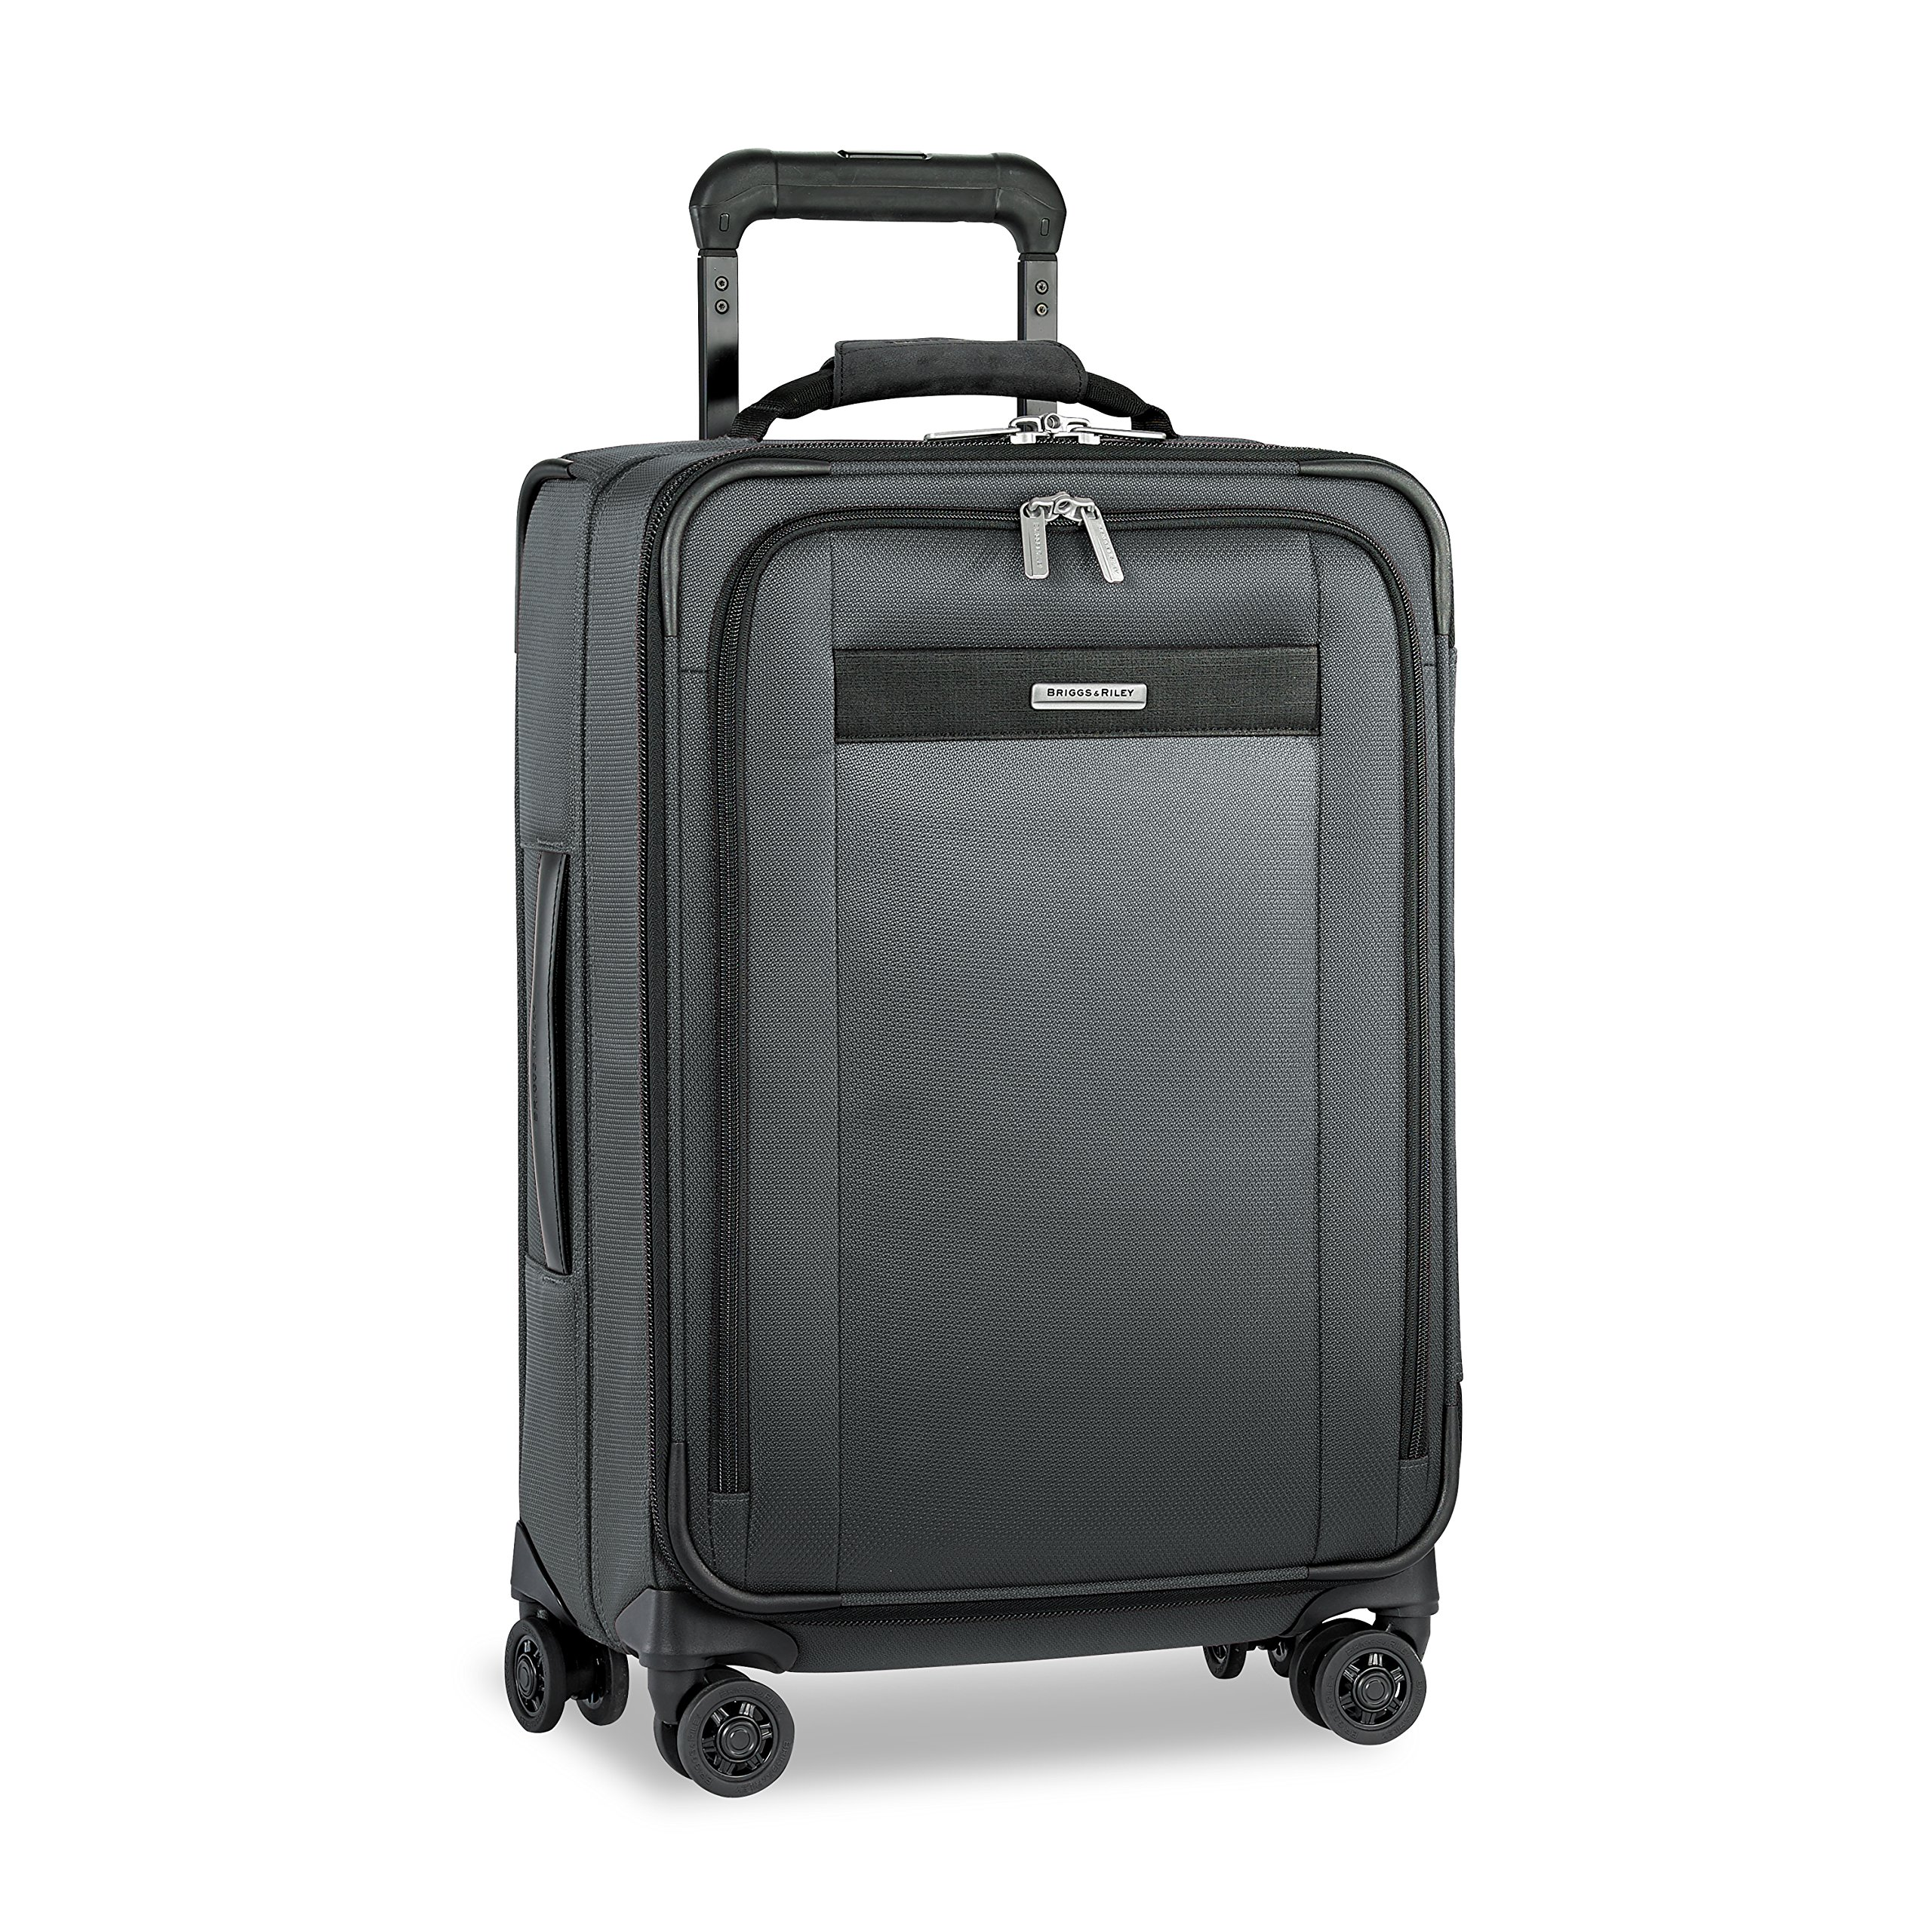 Briggs & Riley Transcend Expandable Carry-On 22'' Spinner, Slate